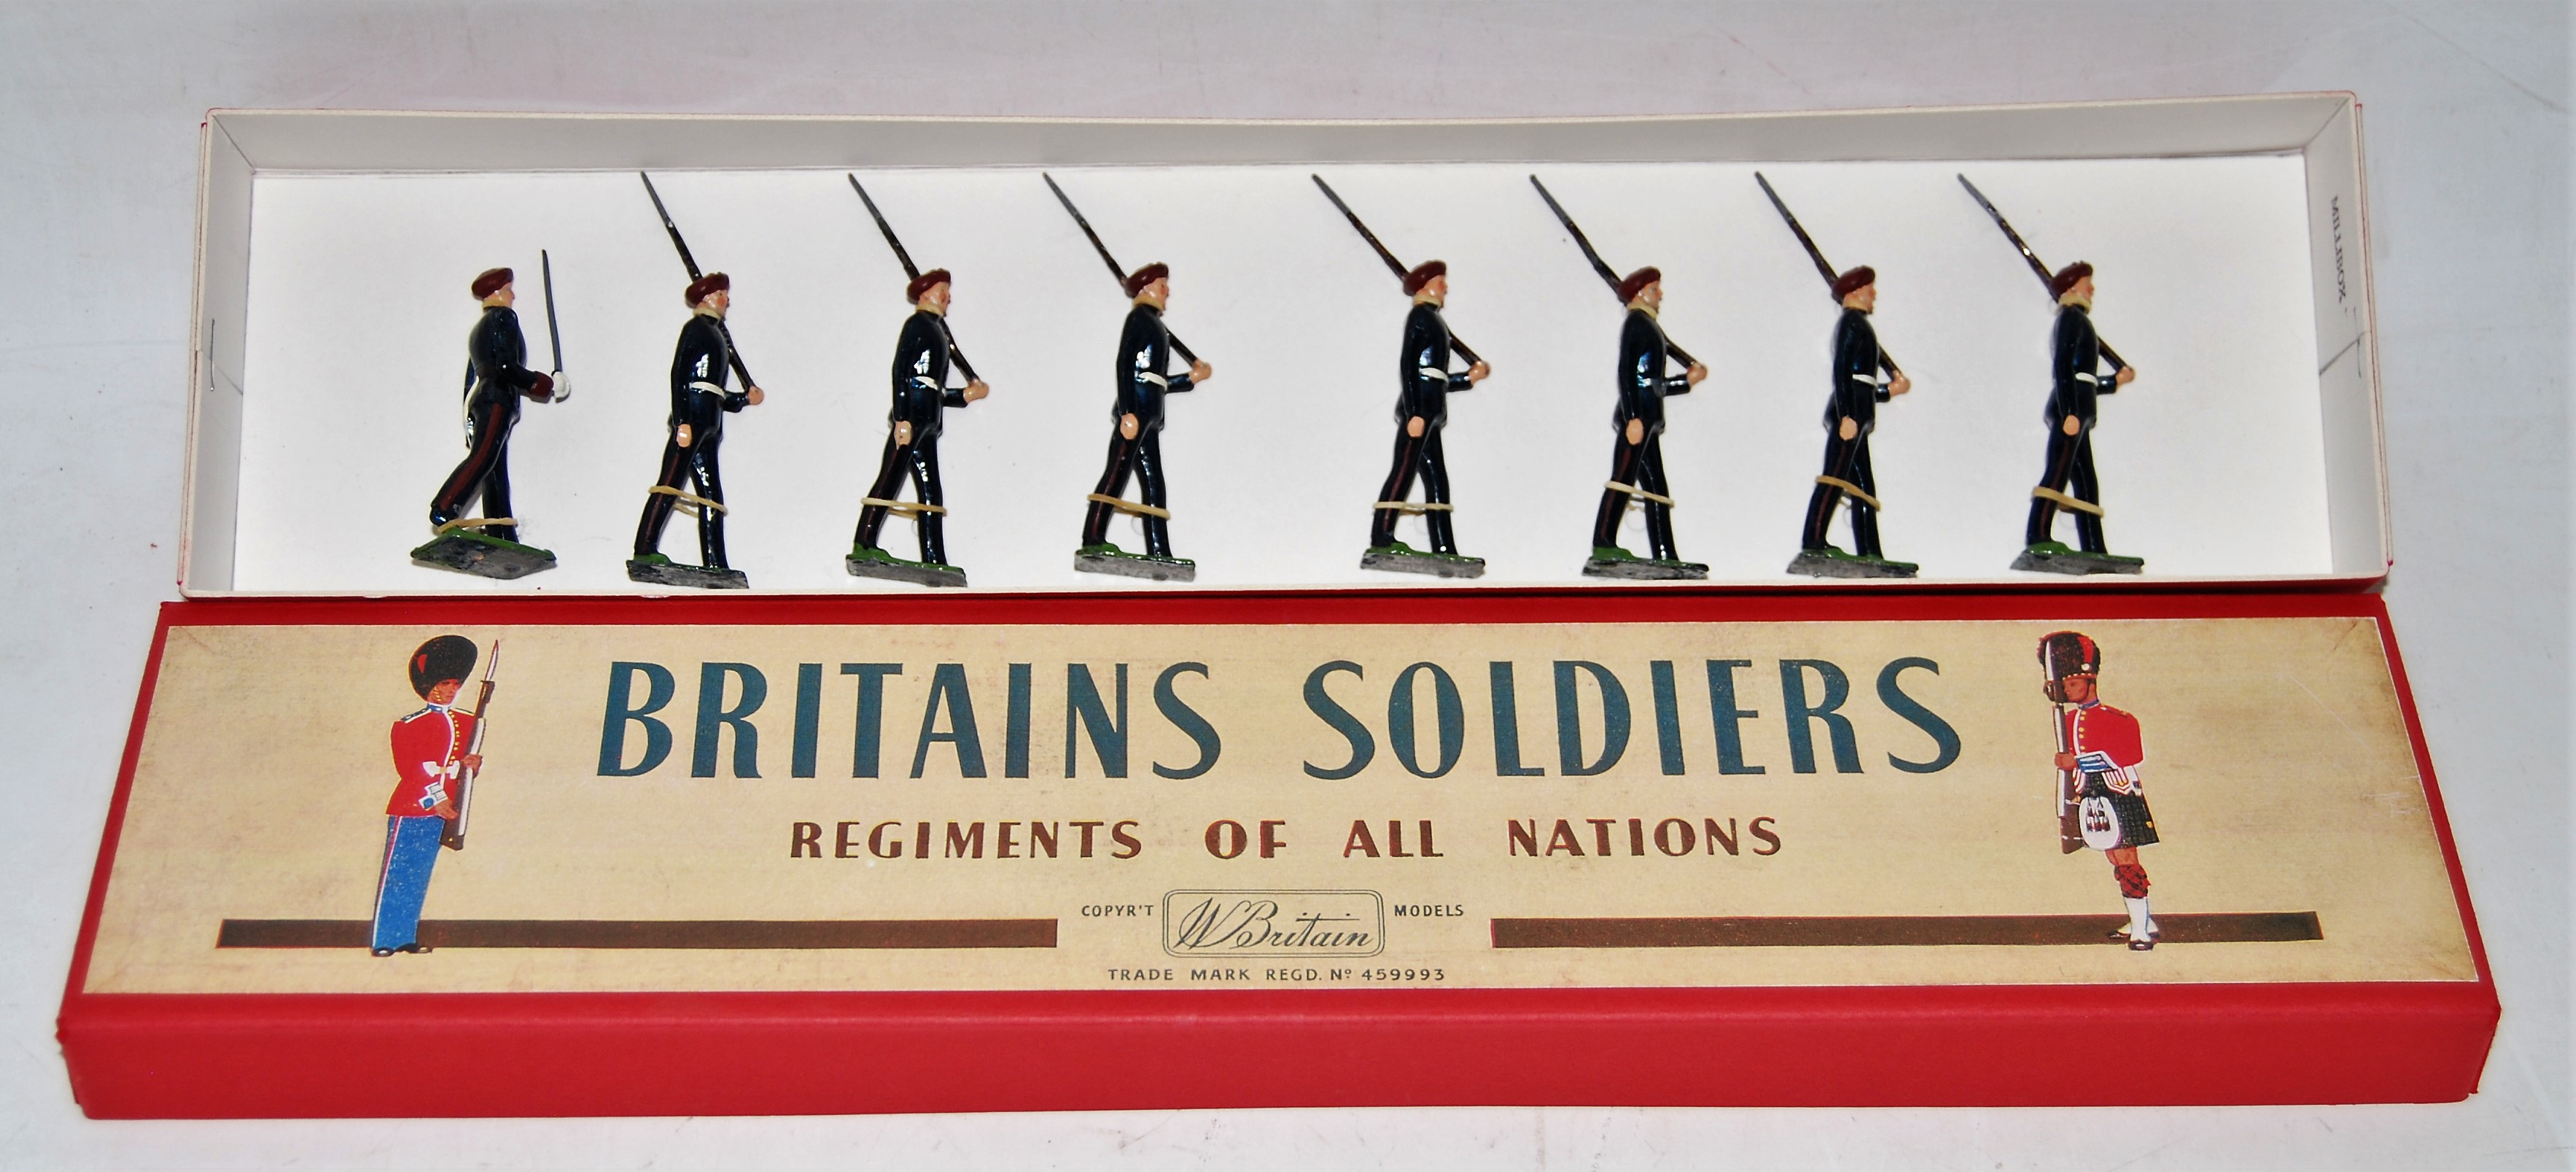 A Britains set No. 2092 Parachute Regiment (1953-59) comprising of officer walking with drawn